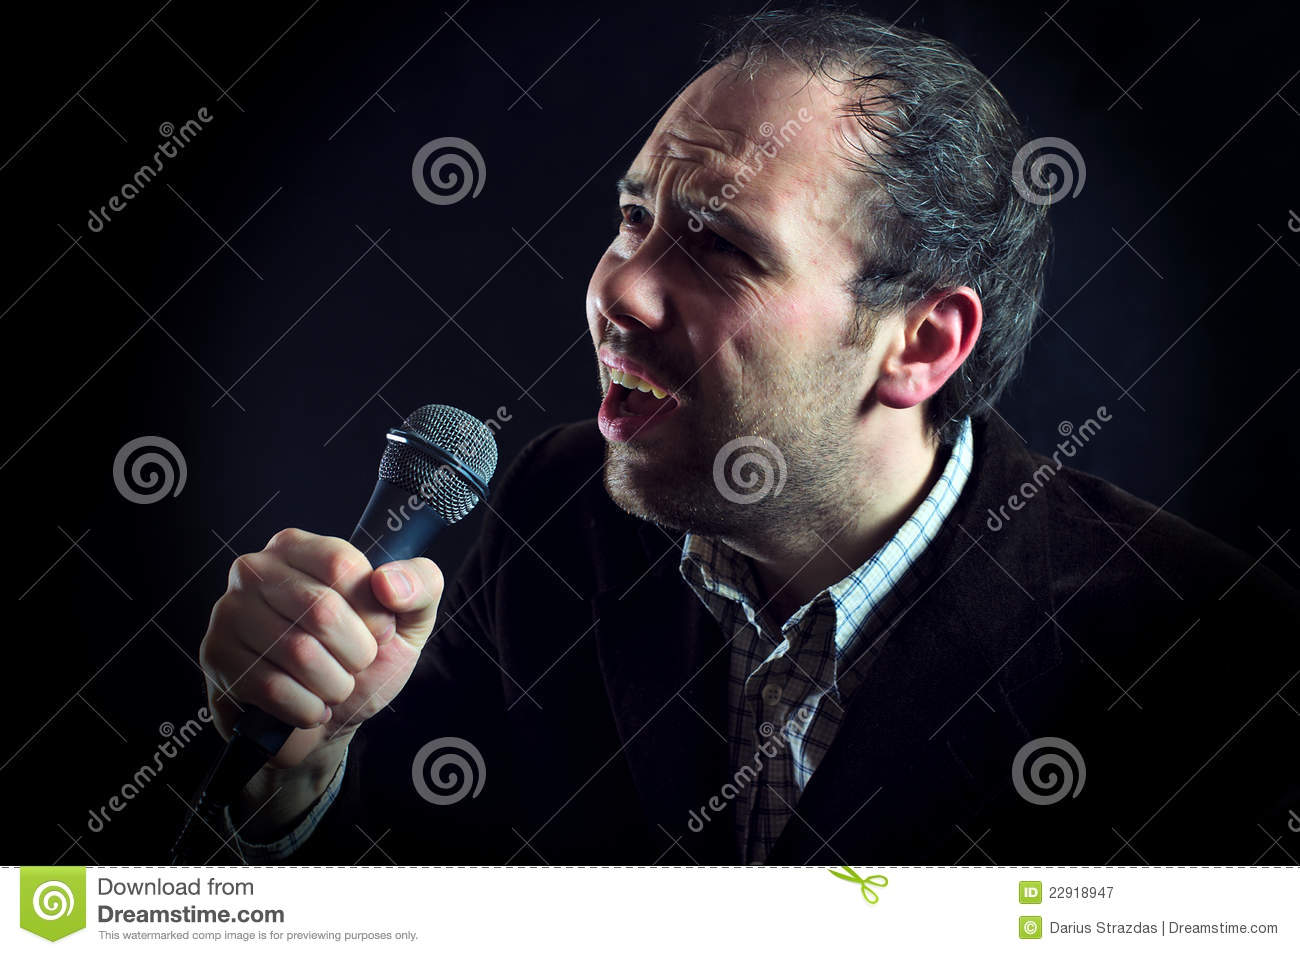 Expressive man singer with microphone